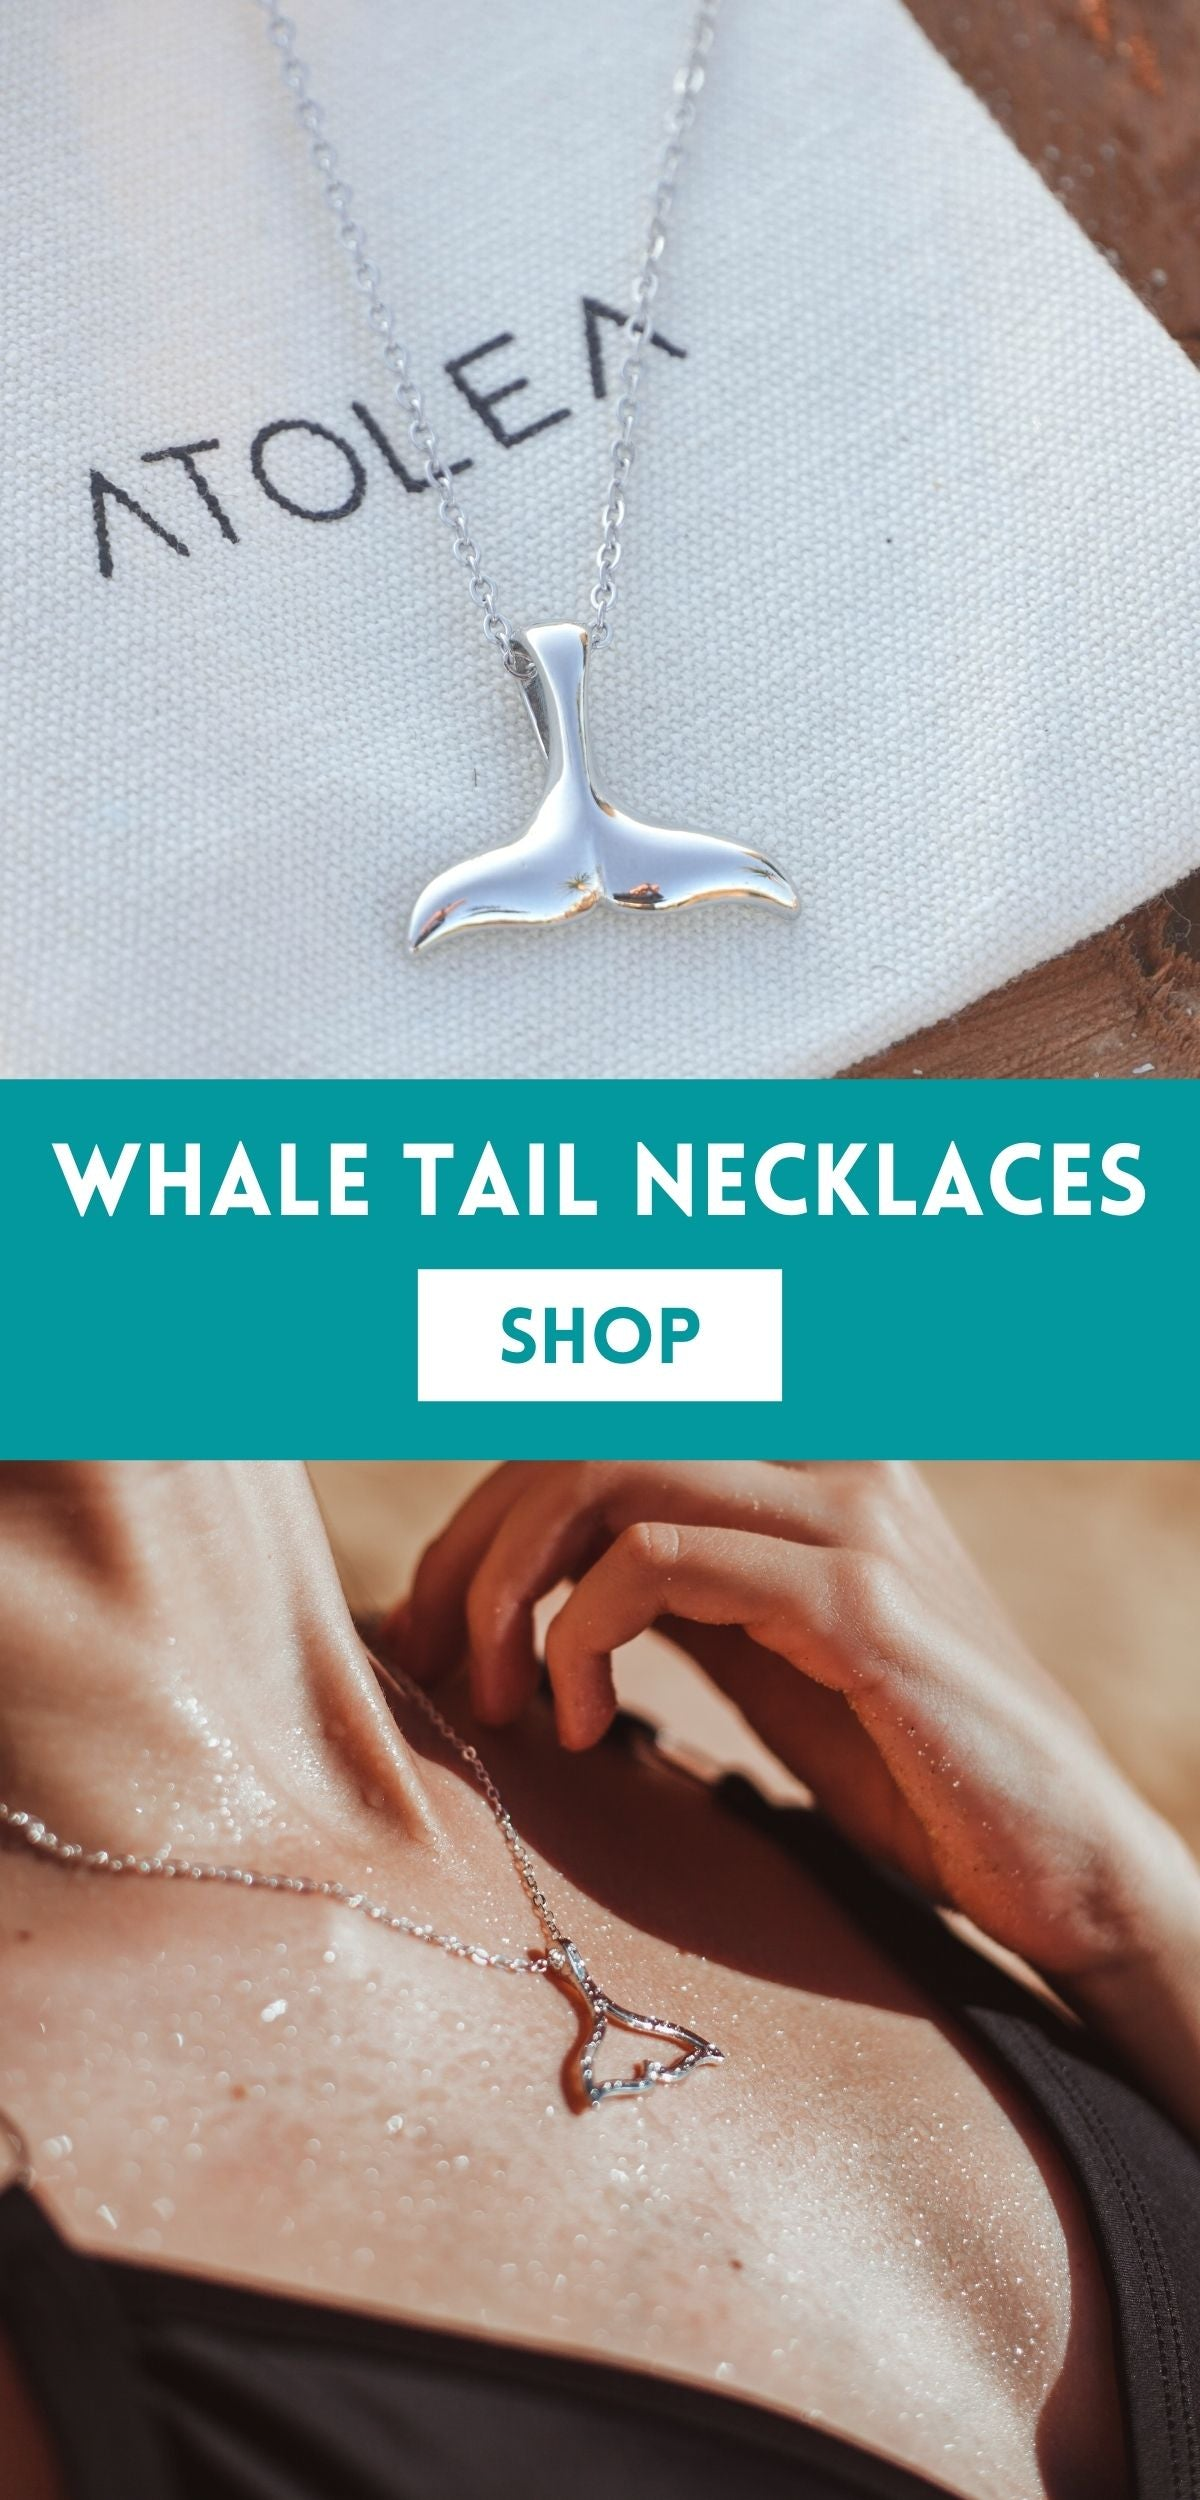 Whale tail necklaces meaning